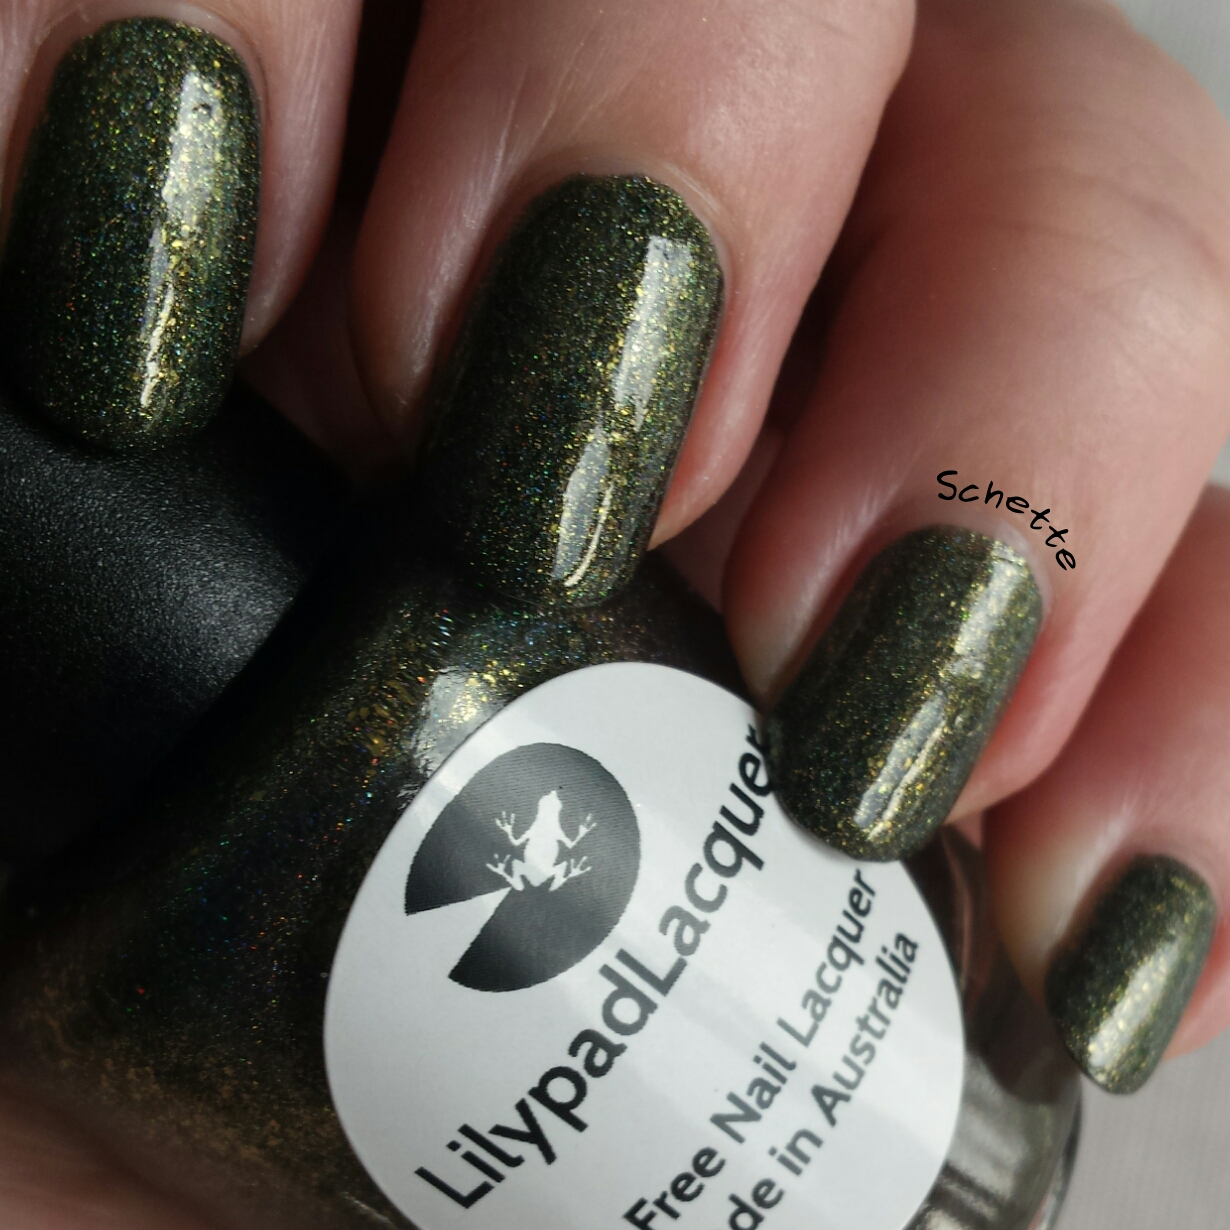 Lilypad Lacquer - National Beauty, Durian Dreamin'